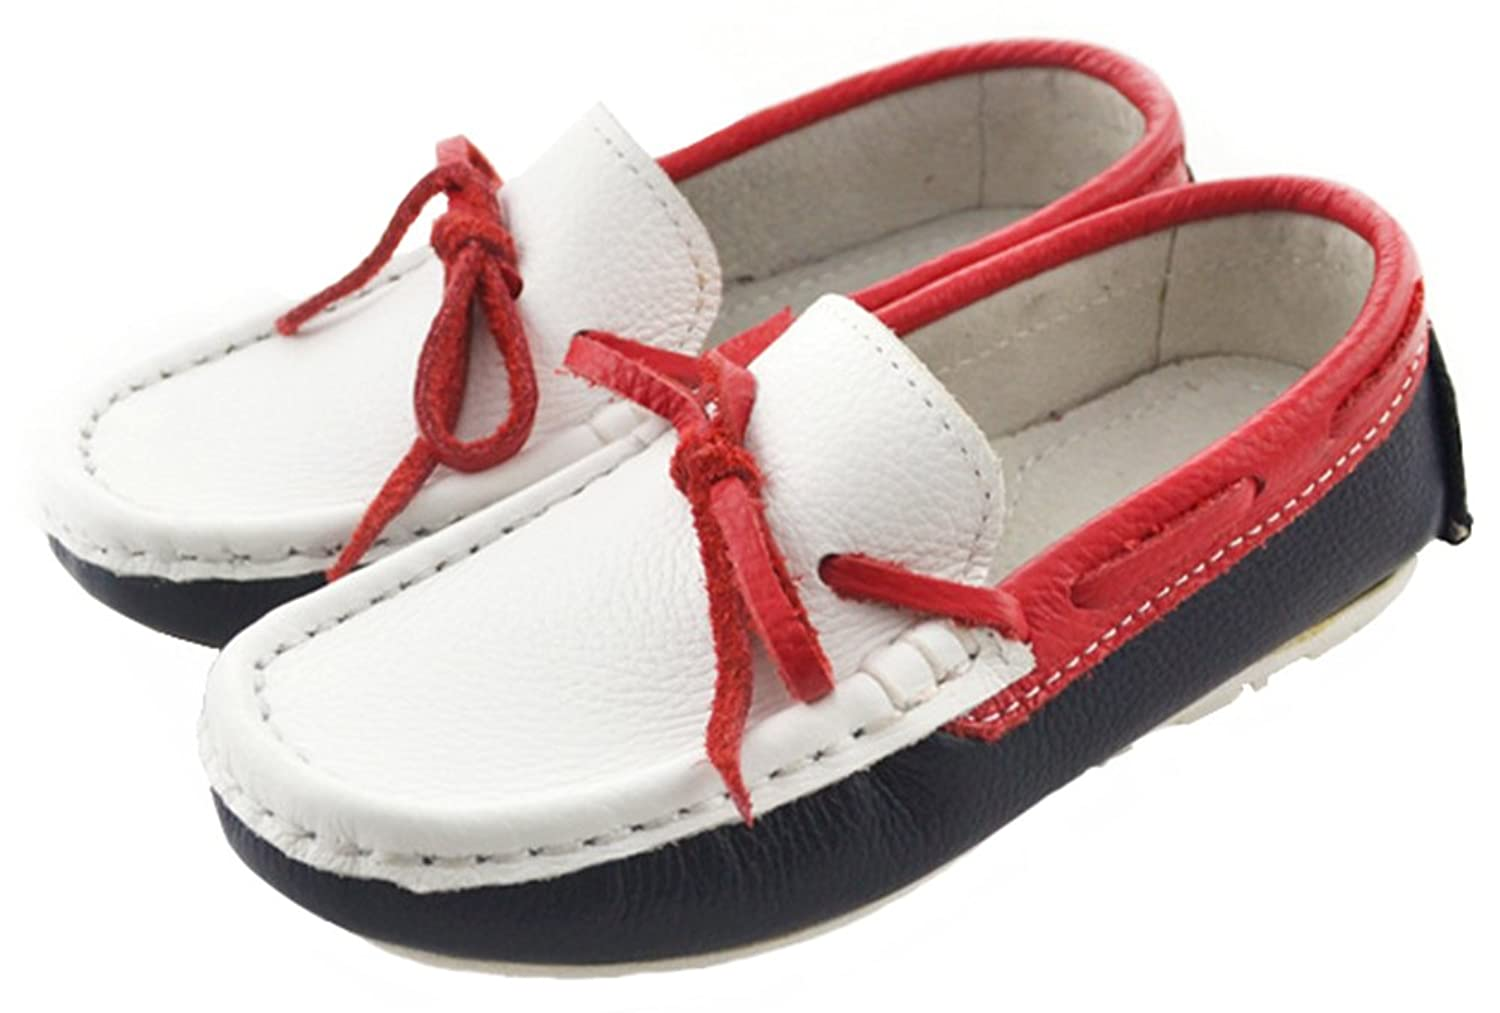 IDIFU Boy's Girl's Unisex Bow Slip On Flat Leather Loafers Soft Bottom Low  Top Sandals